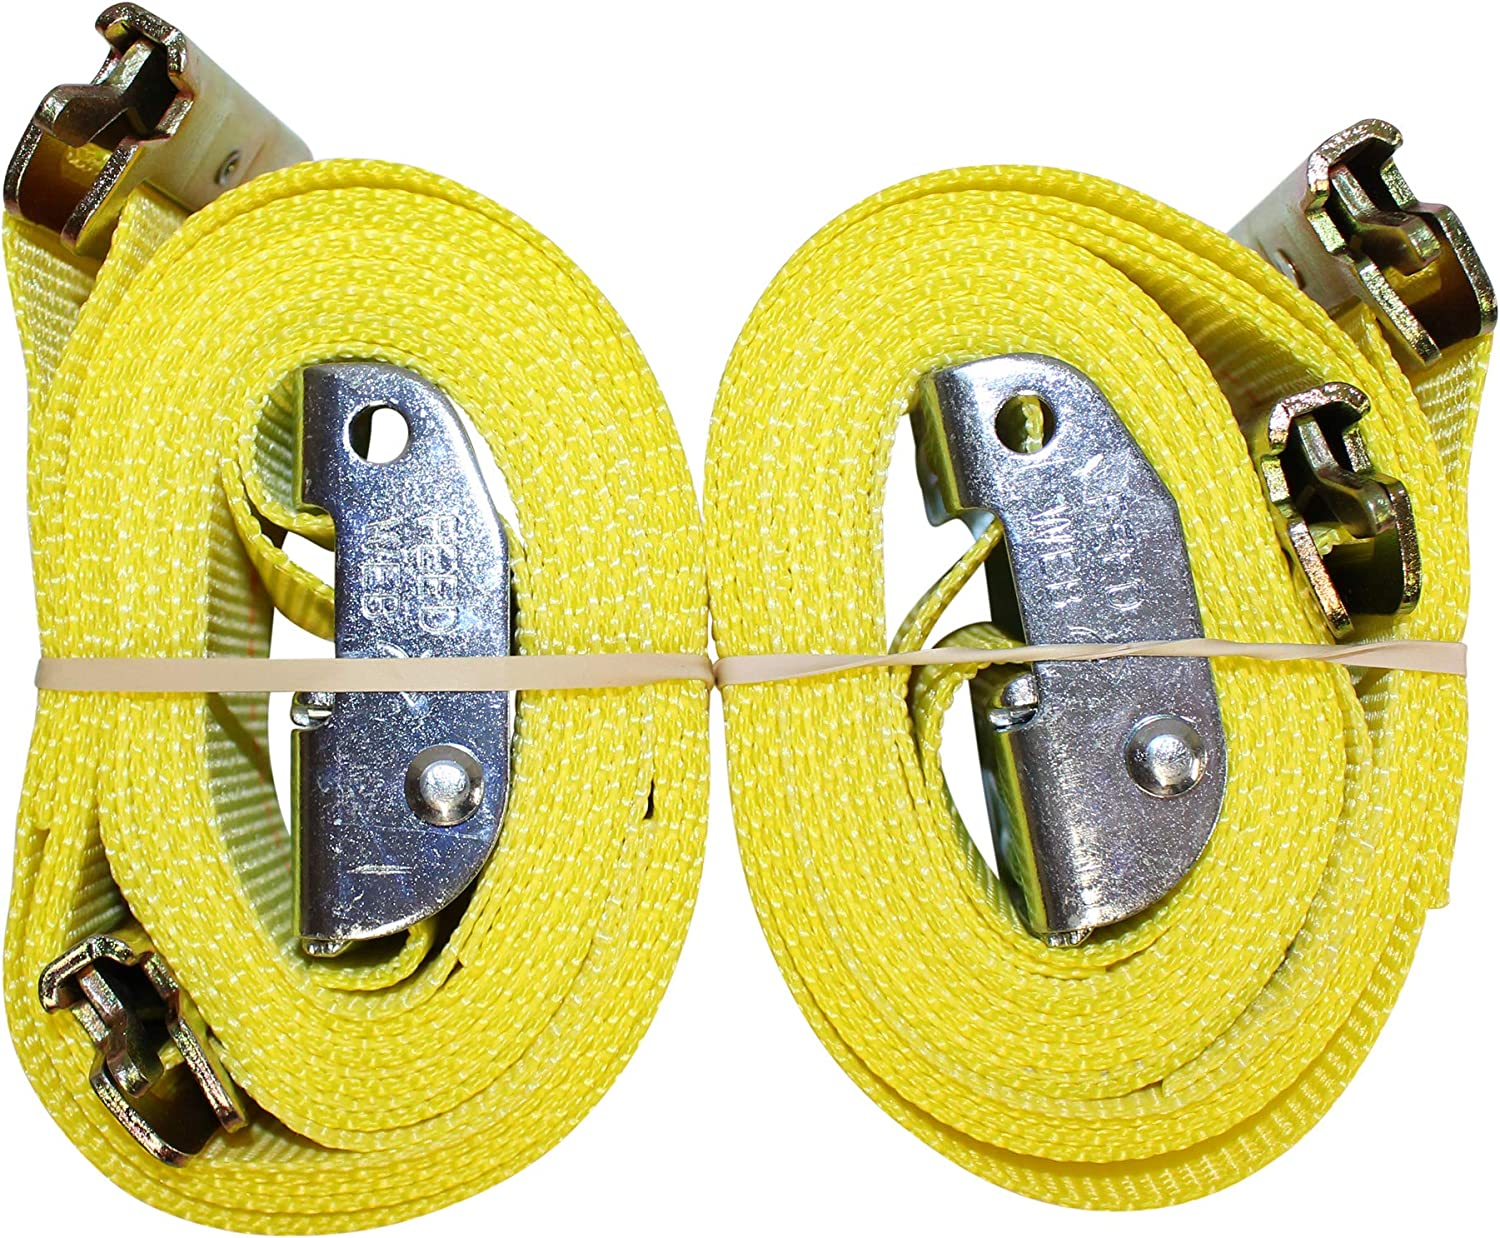 More ETrack Lashing Tie Down for Loading Truck Bed SGT KNOTS Flatbed 2 in x 12 ft Strap with Cam - Yellow E Track Heavy Duty Adjustable Cam Buckle Straps E-Track Ratcheting Cargo Strap